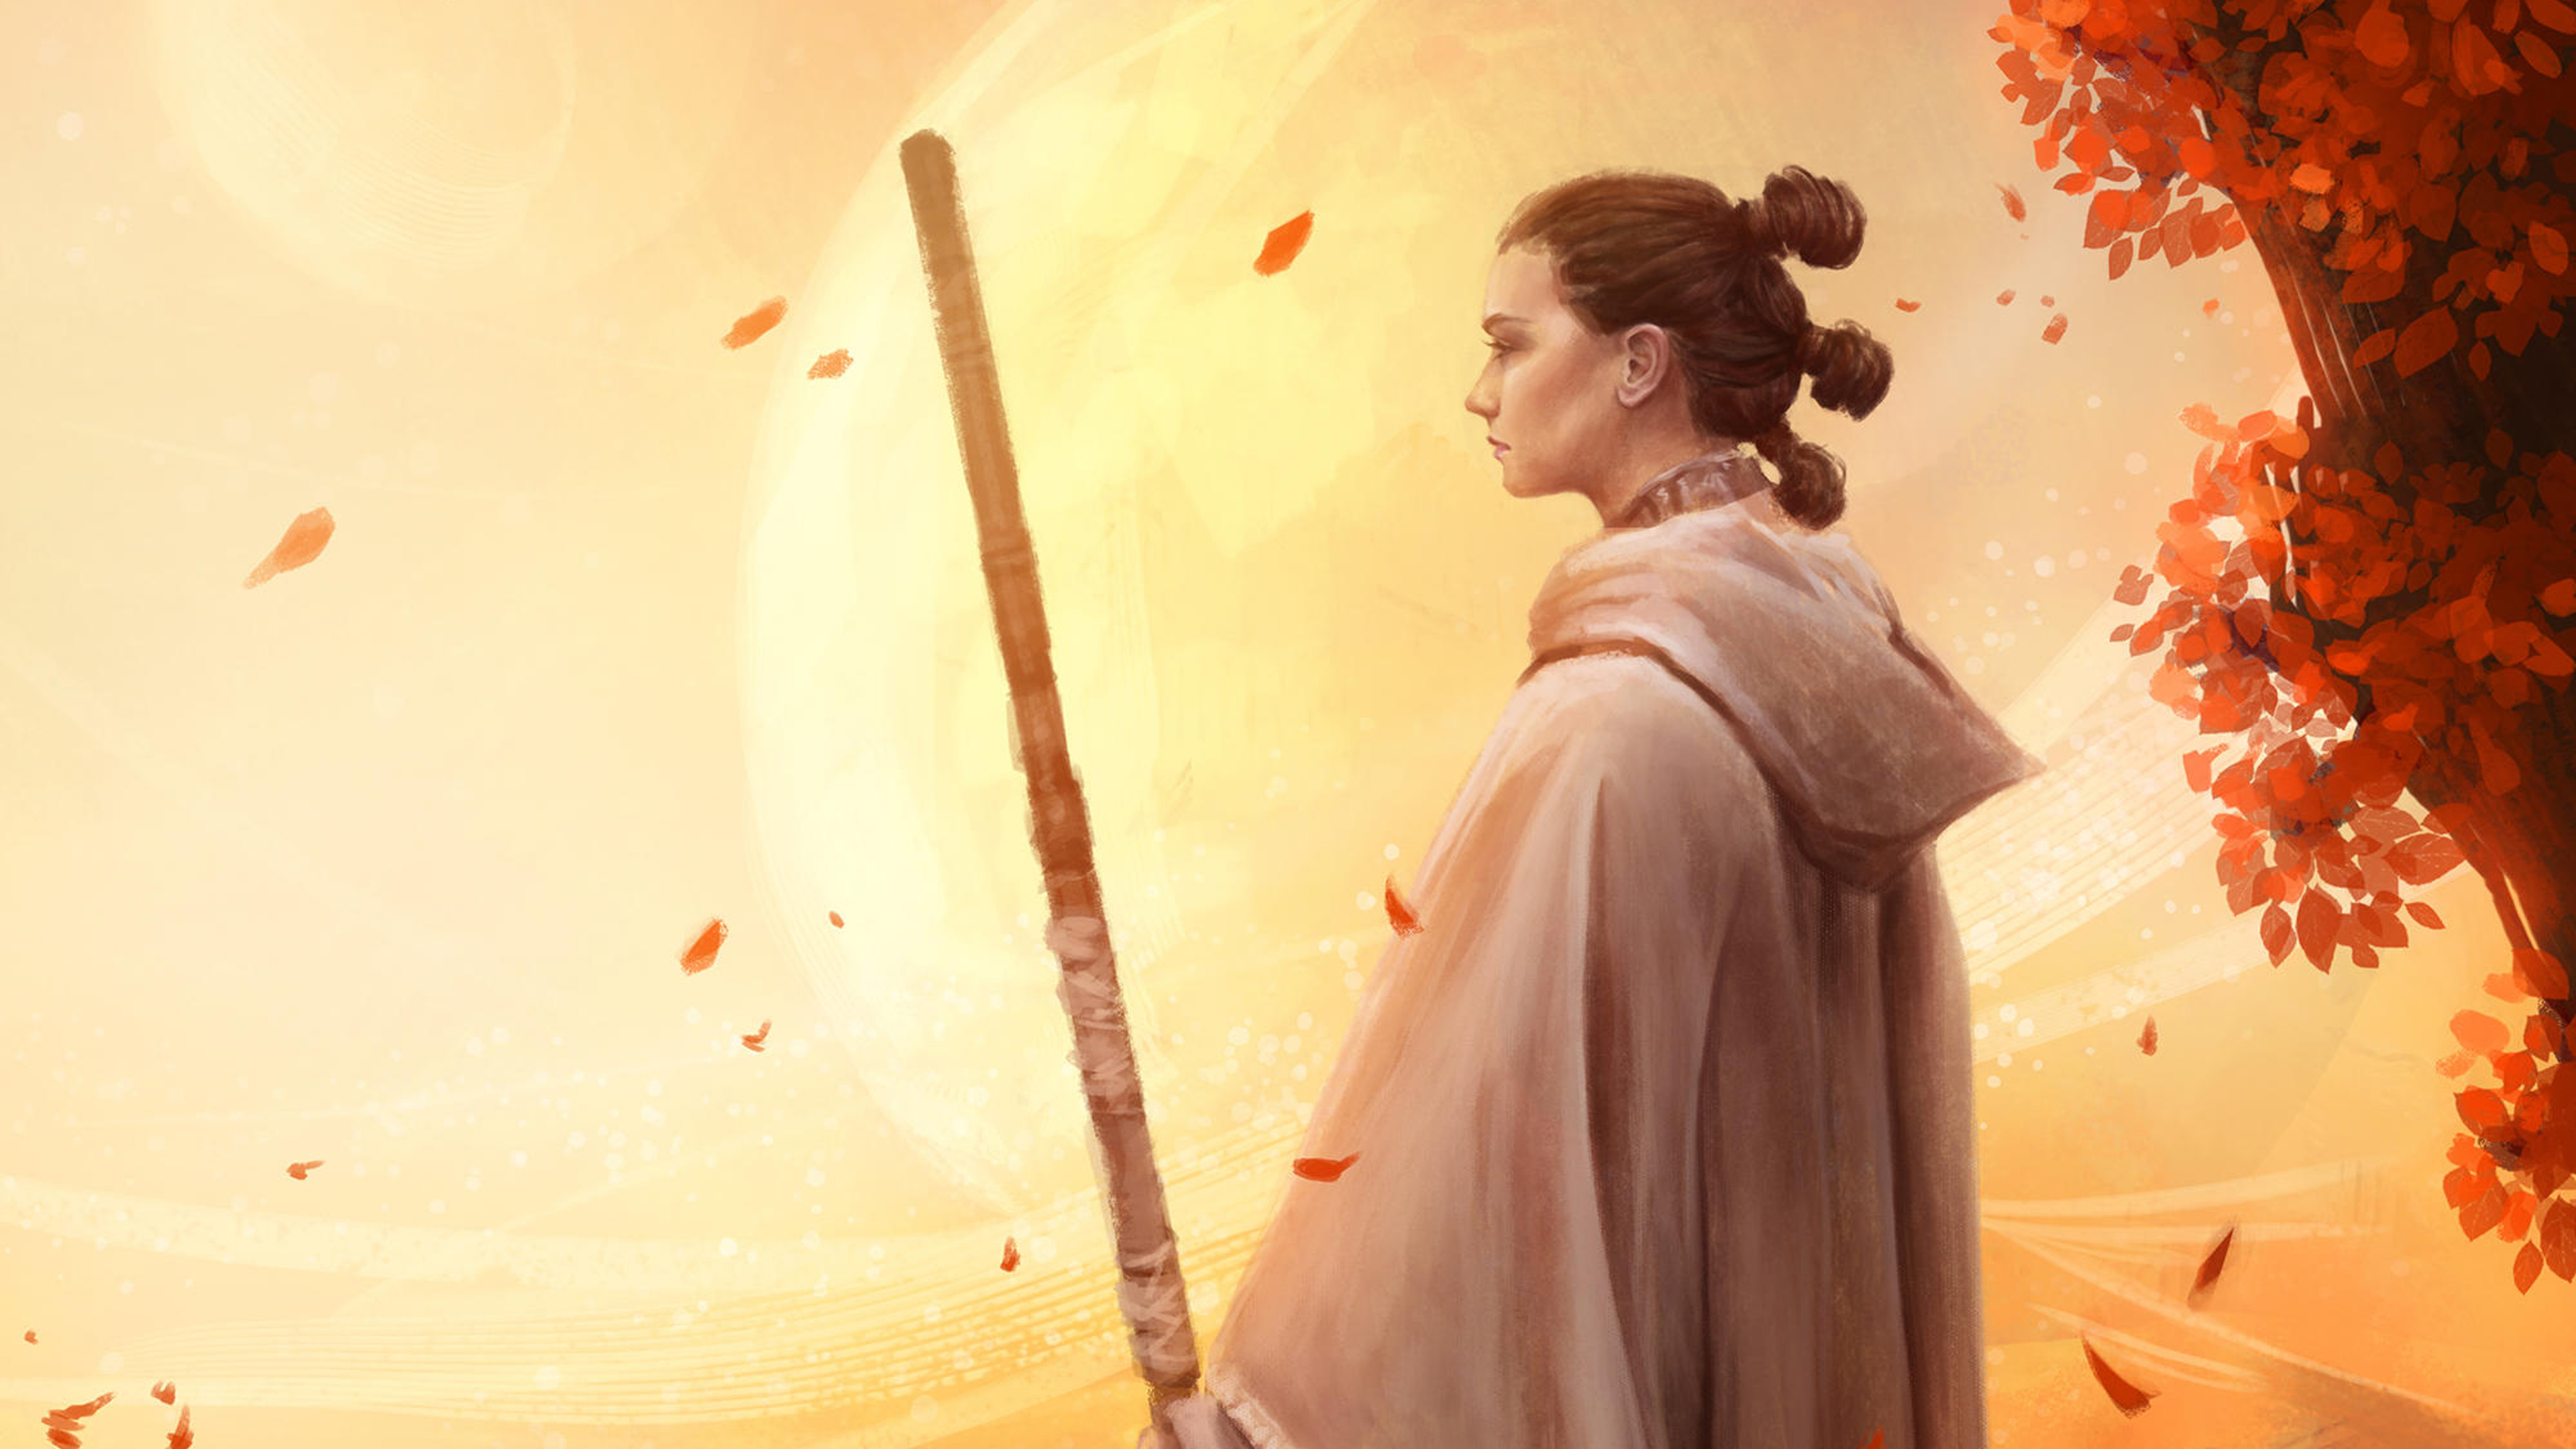 Wallpaper 4k Rey With Bb8 4k Wallpapers 5k Wallpapers